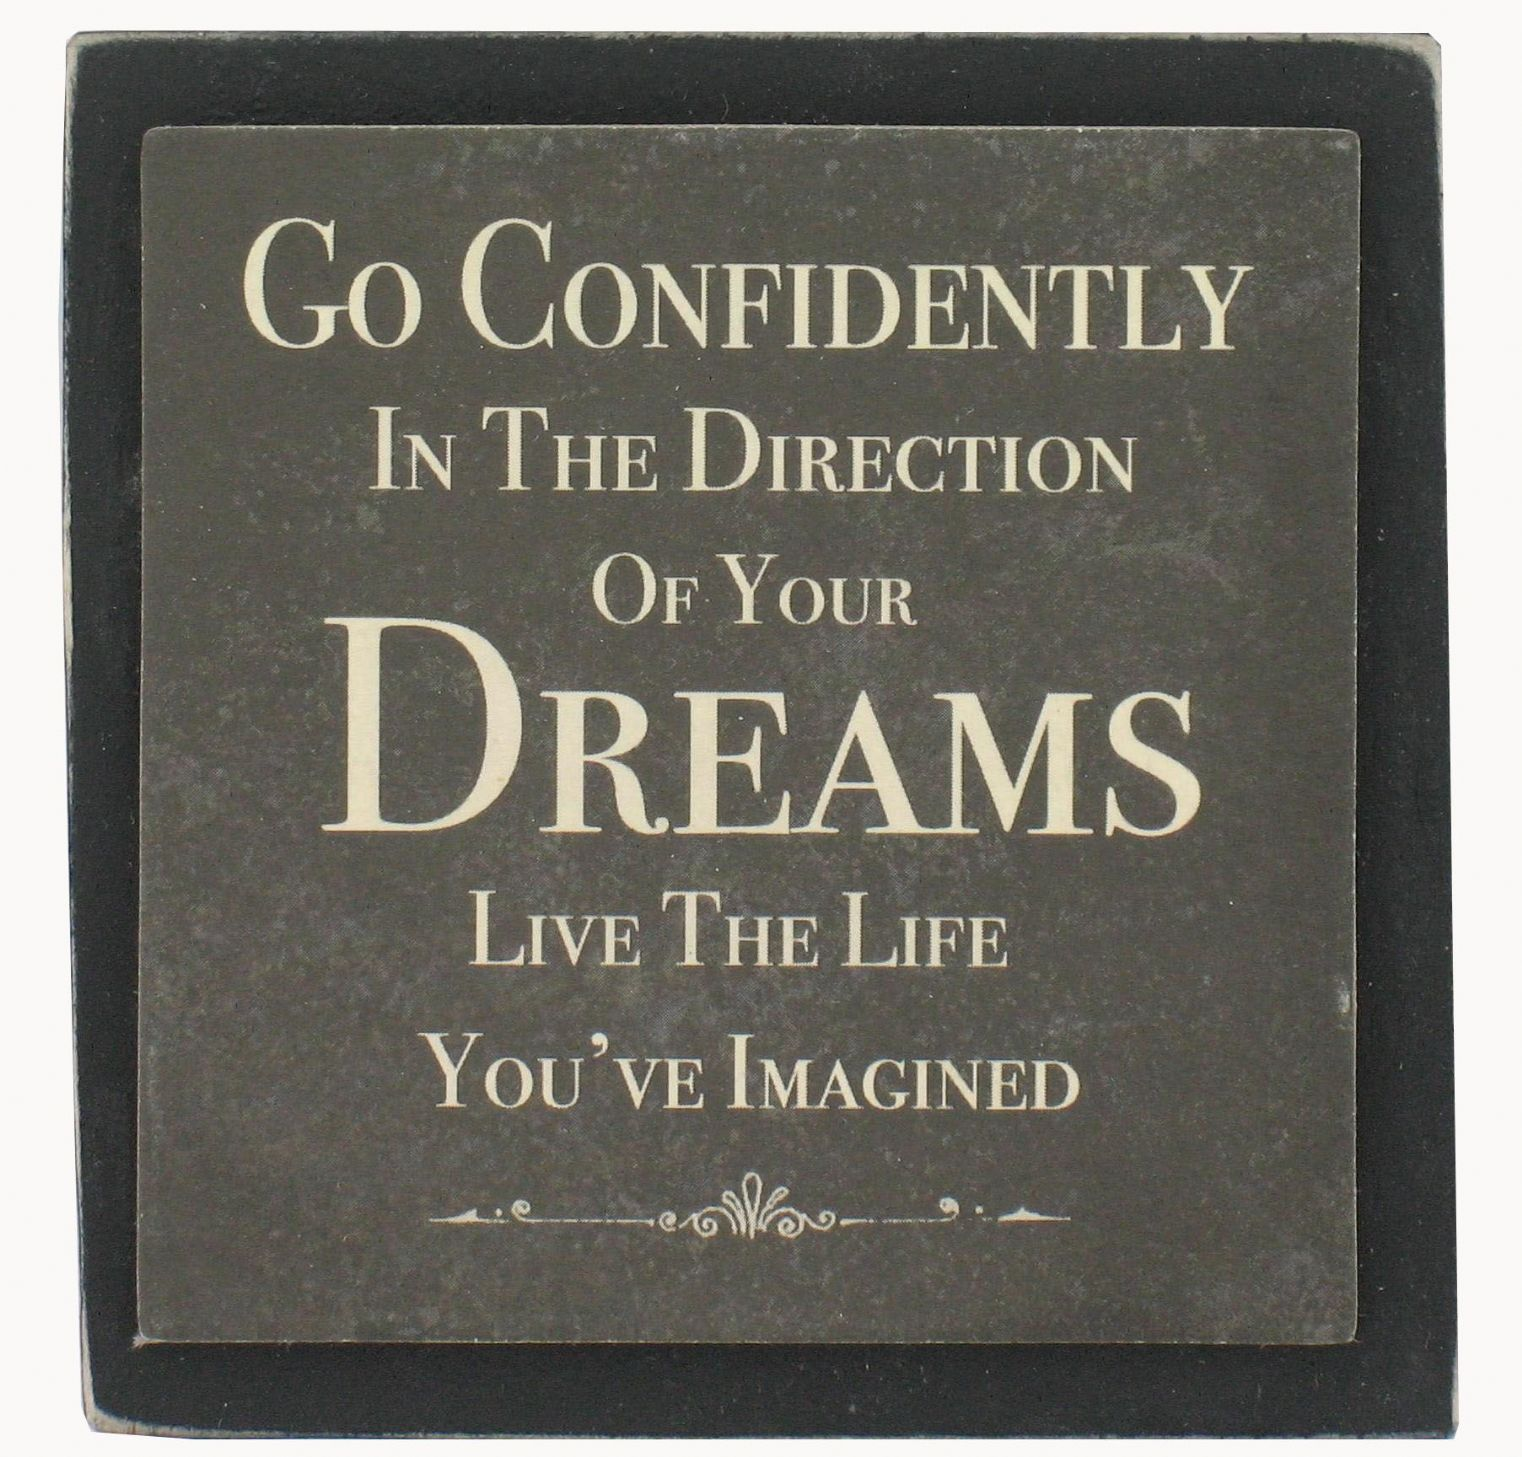 Graduation Love Quotes: Go Confidently In The Direction Of Your Dreams